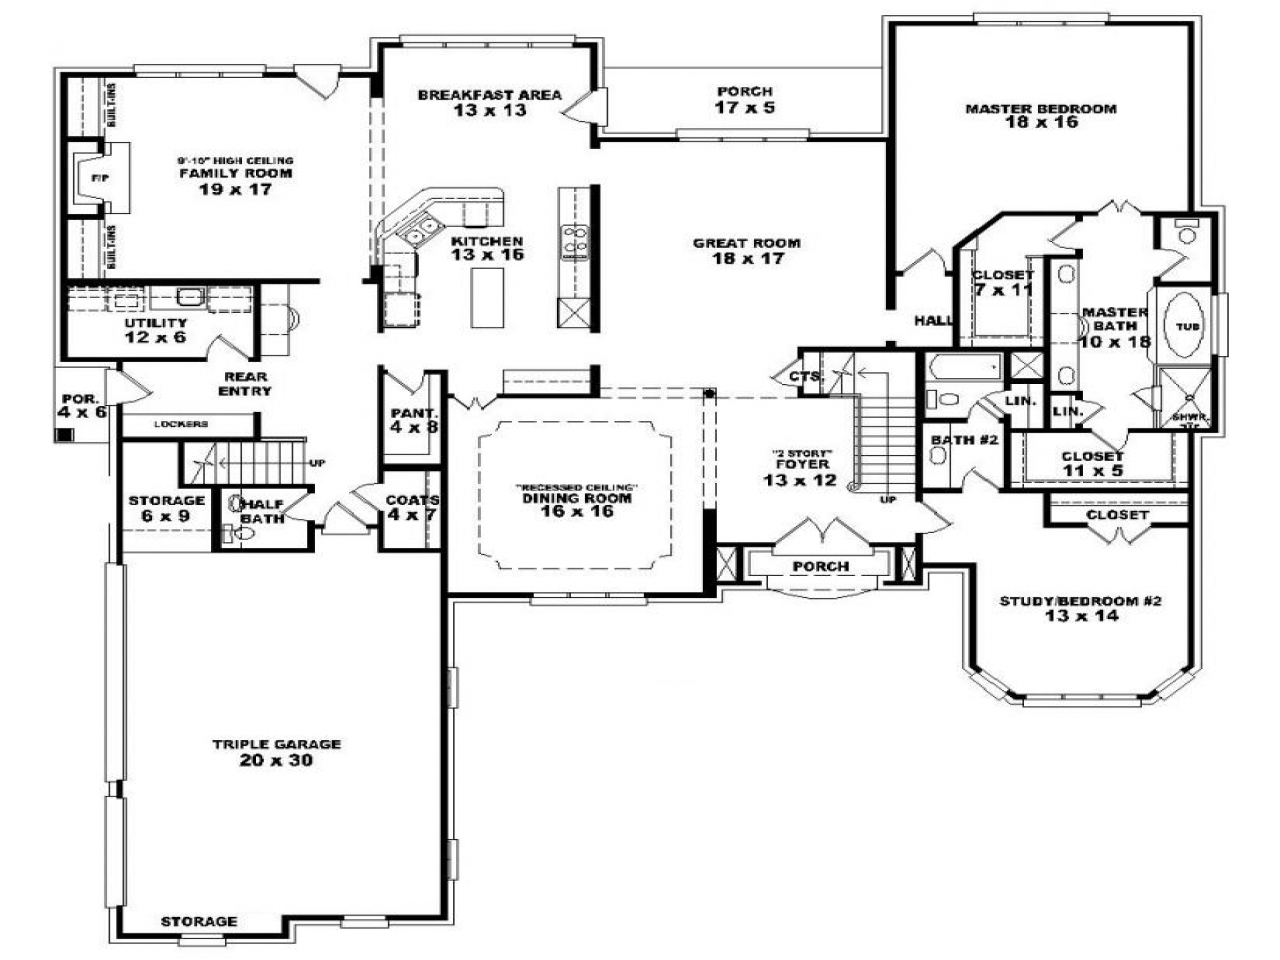 4 bedroom one story house plans our two bedroom story for 4 bedroom one story house plans